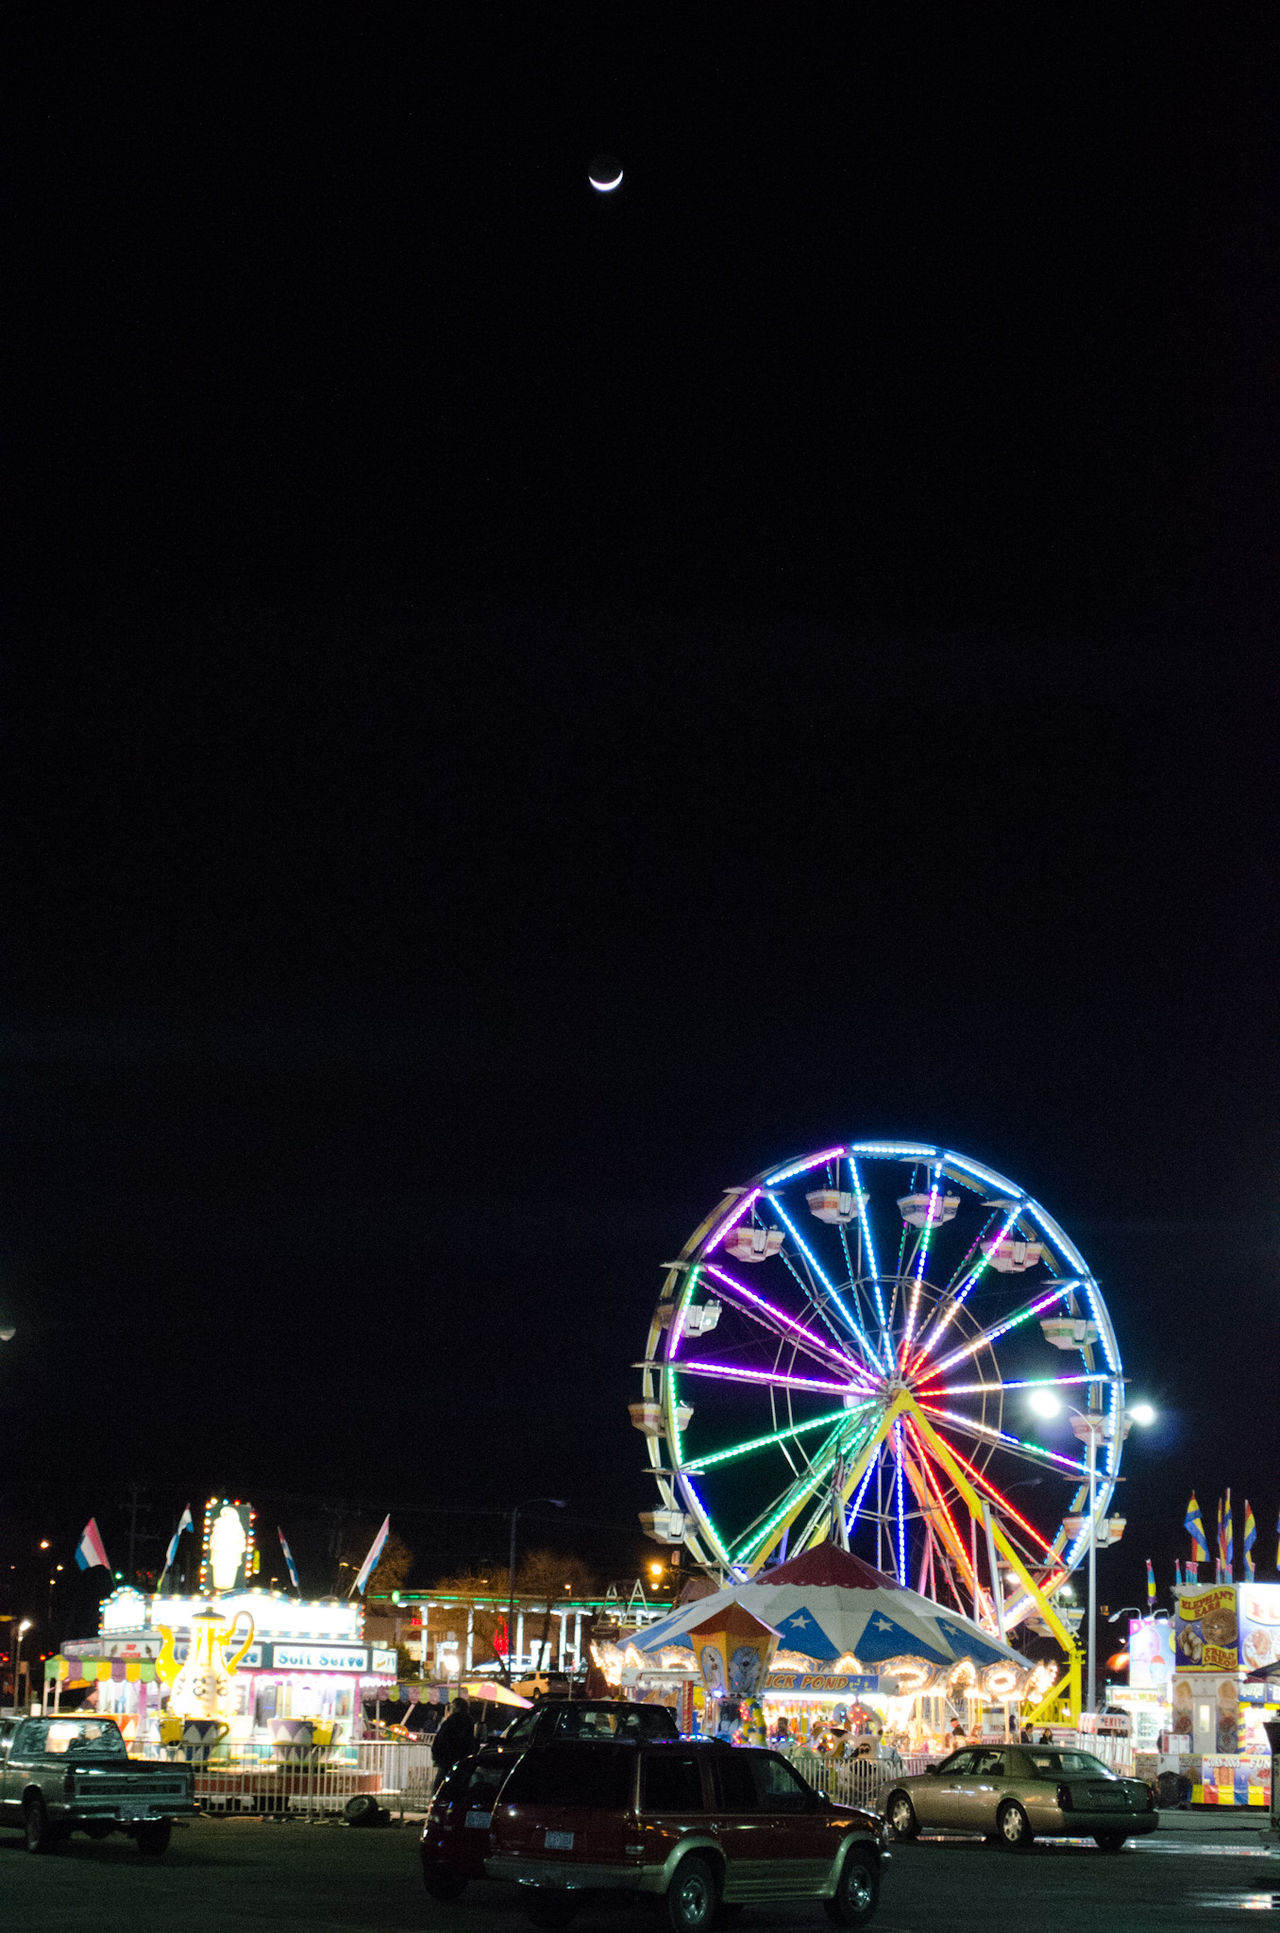 The Fair is in town ::s:: Amusement Park Amusement Park Ride Architecture Arts Culture And Entertainment Building Exterior Built Structure Copy Space Ferris Wheel Illuminated Multi Colored Nature Night No People Outdoors Sky First Eyeem Photo